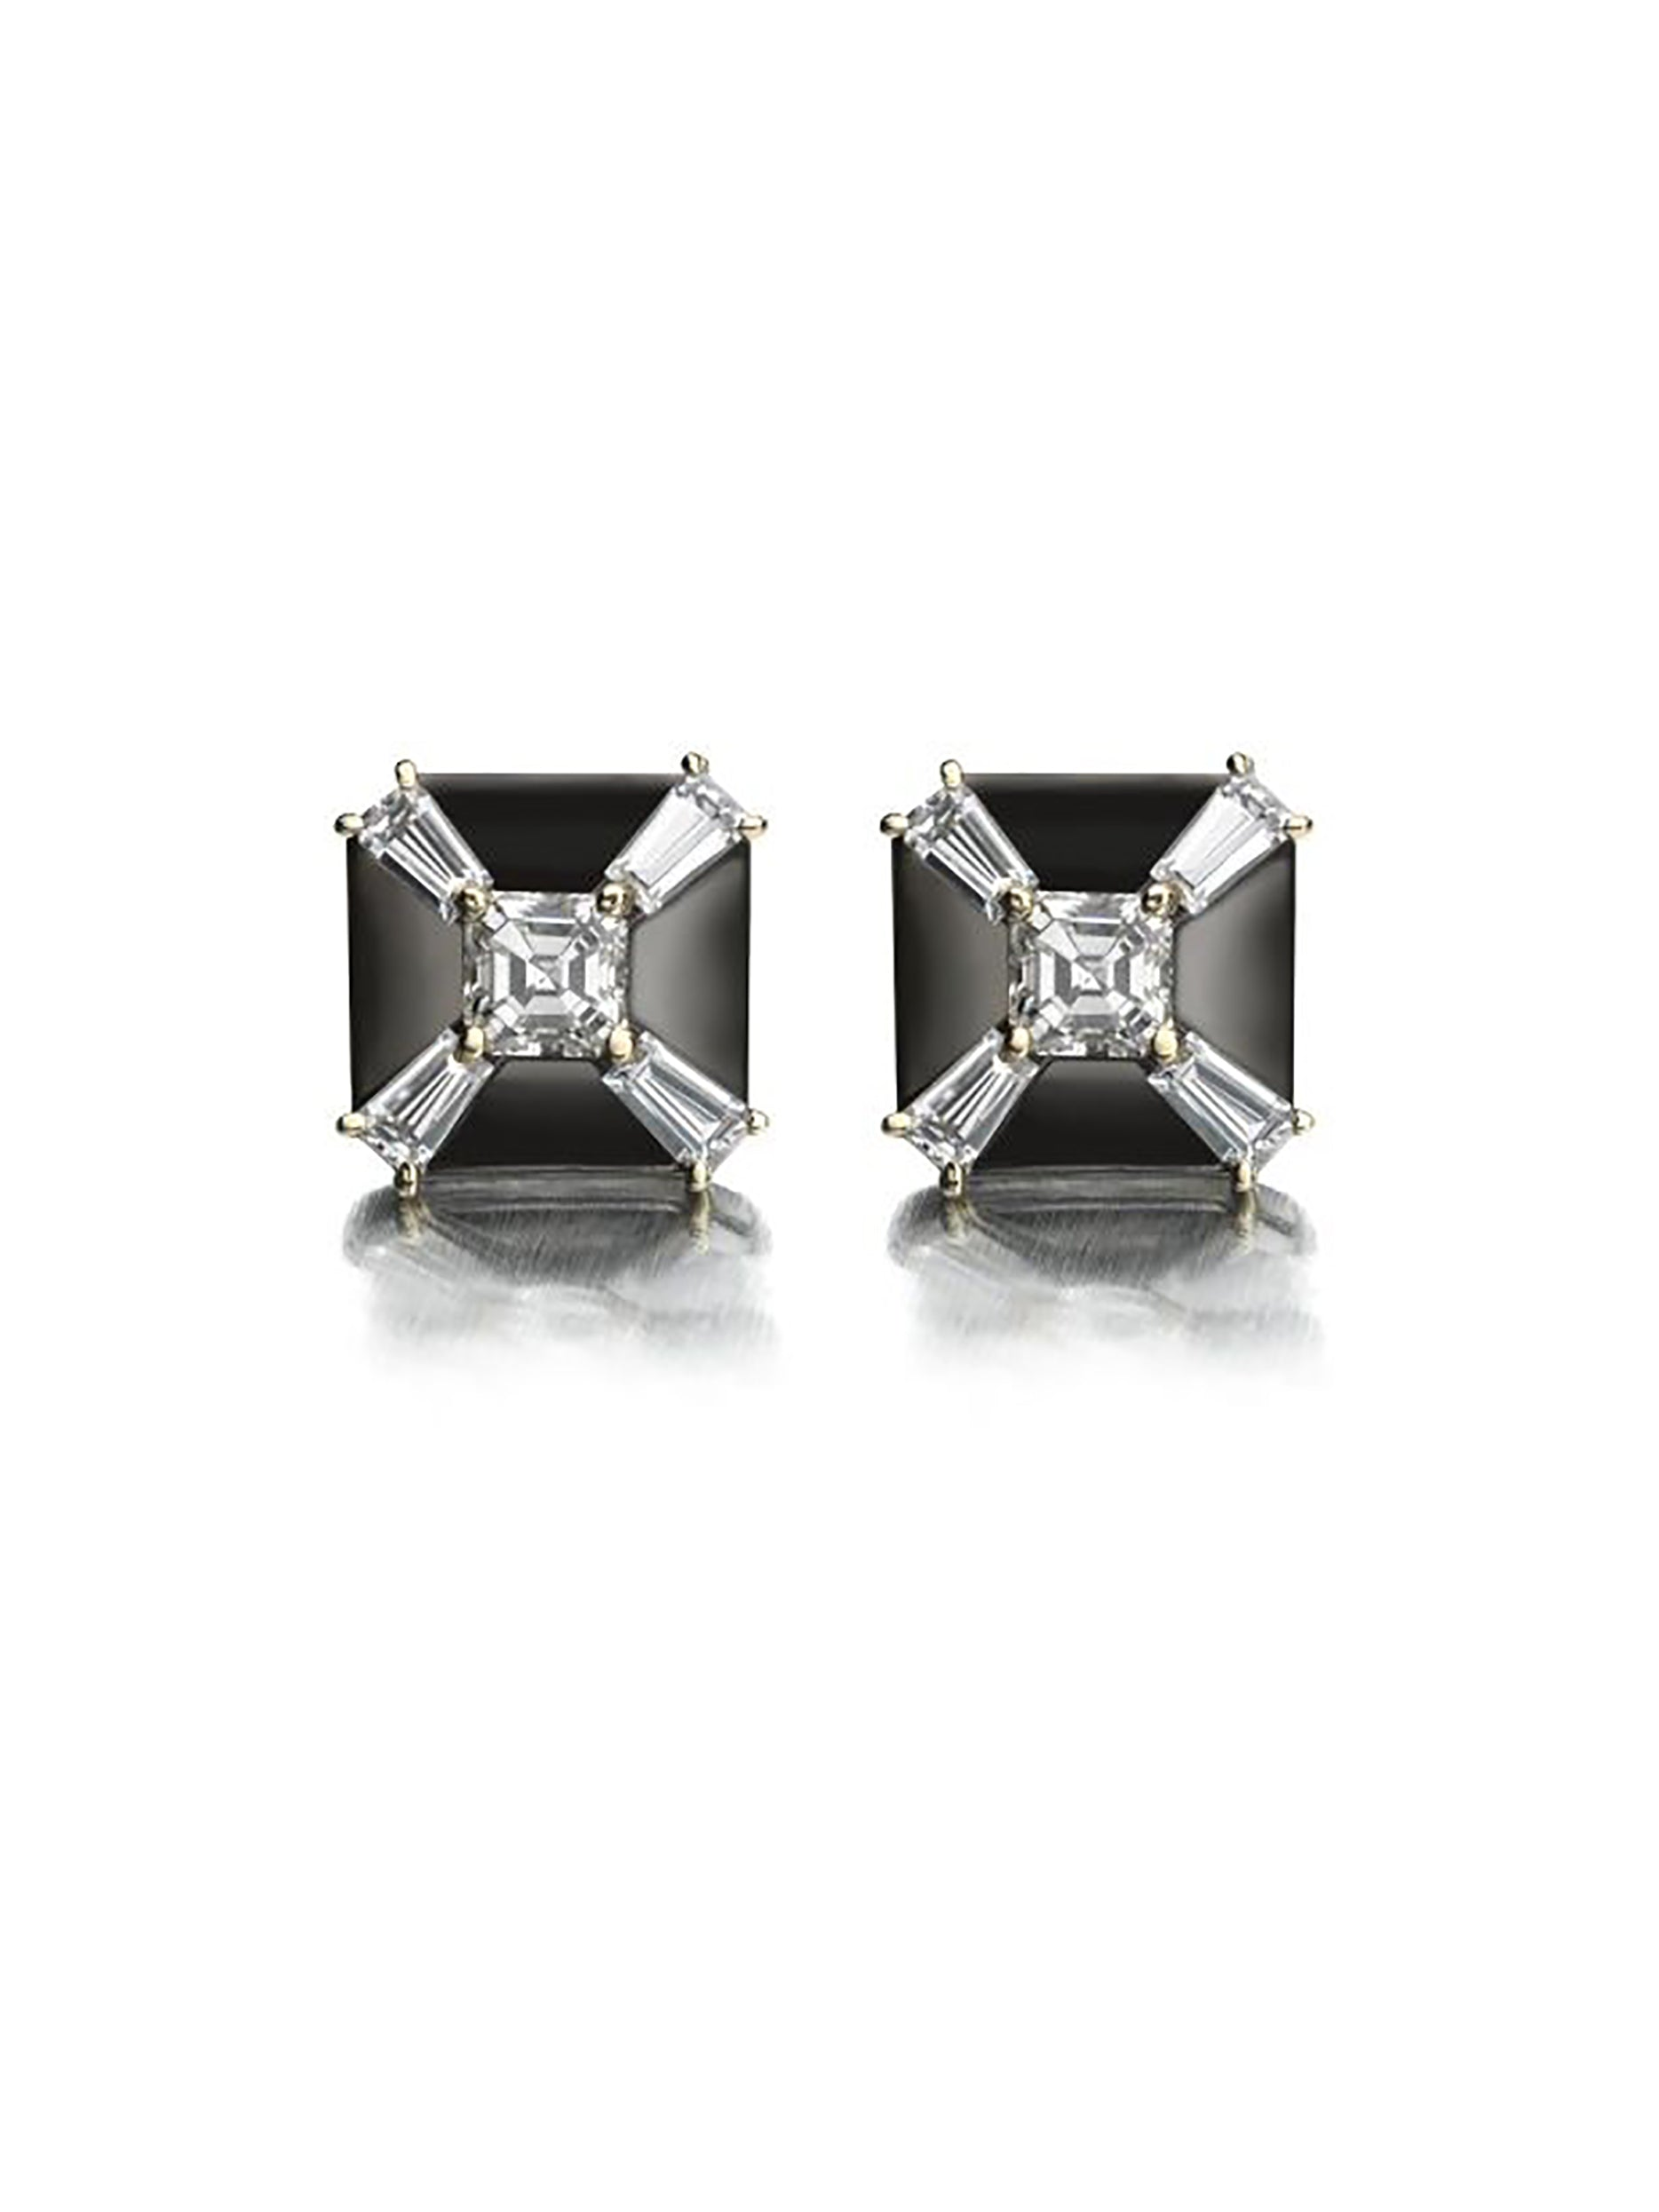 Deco Petite Treasure Earrings